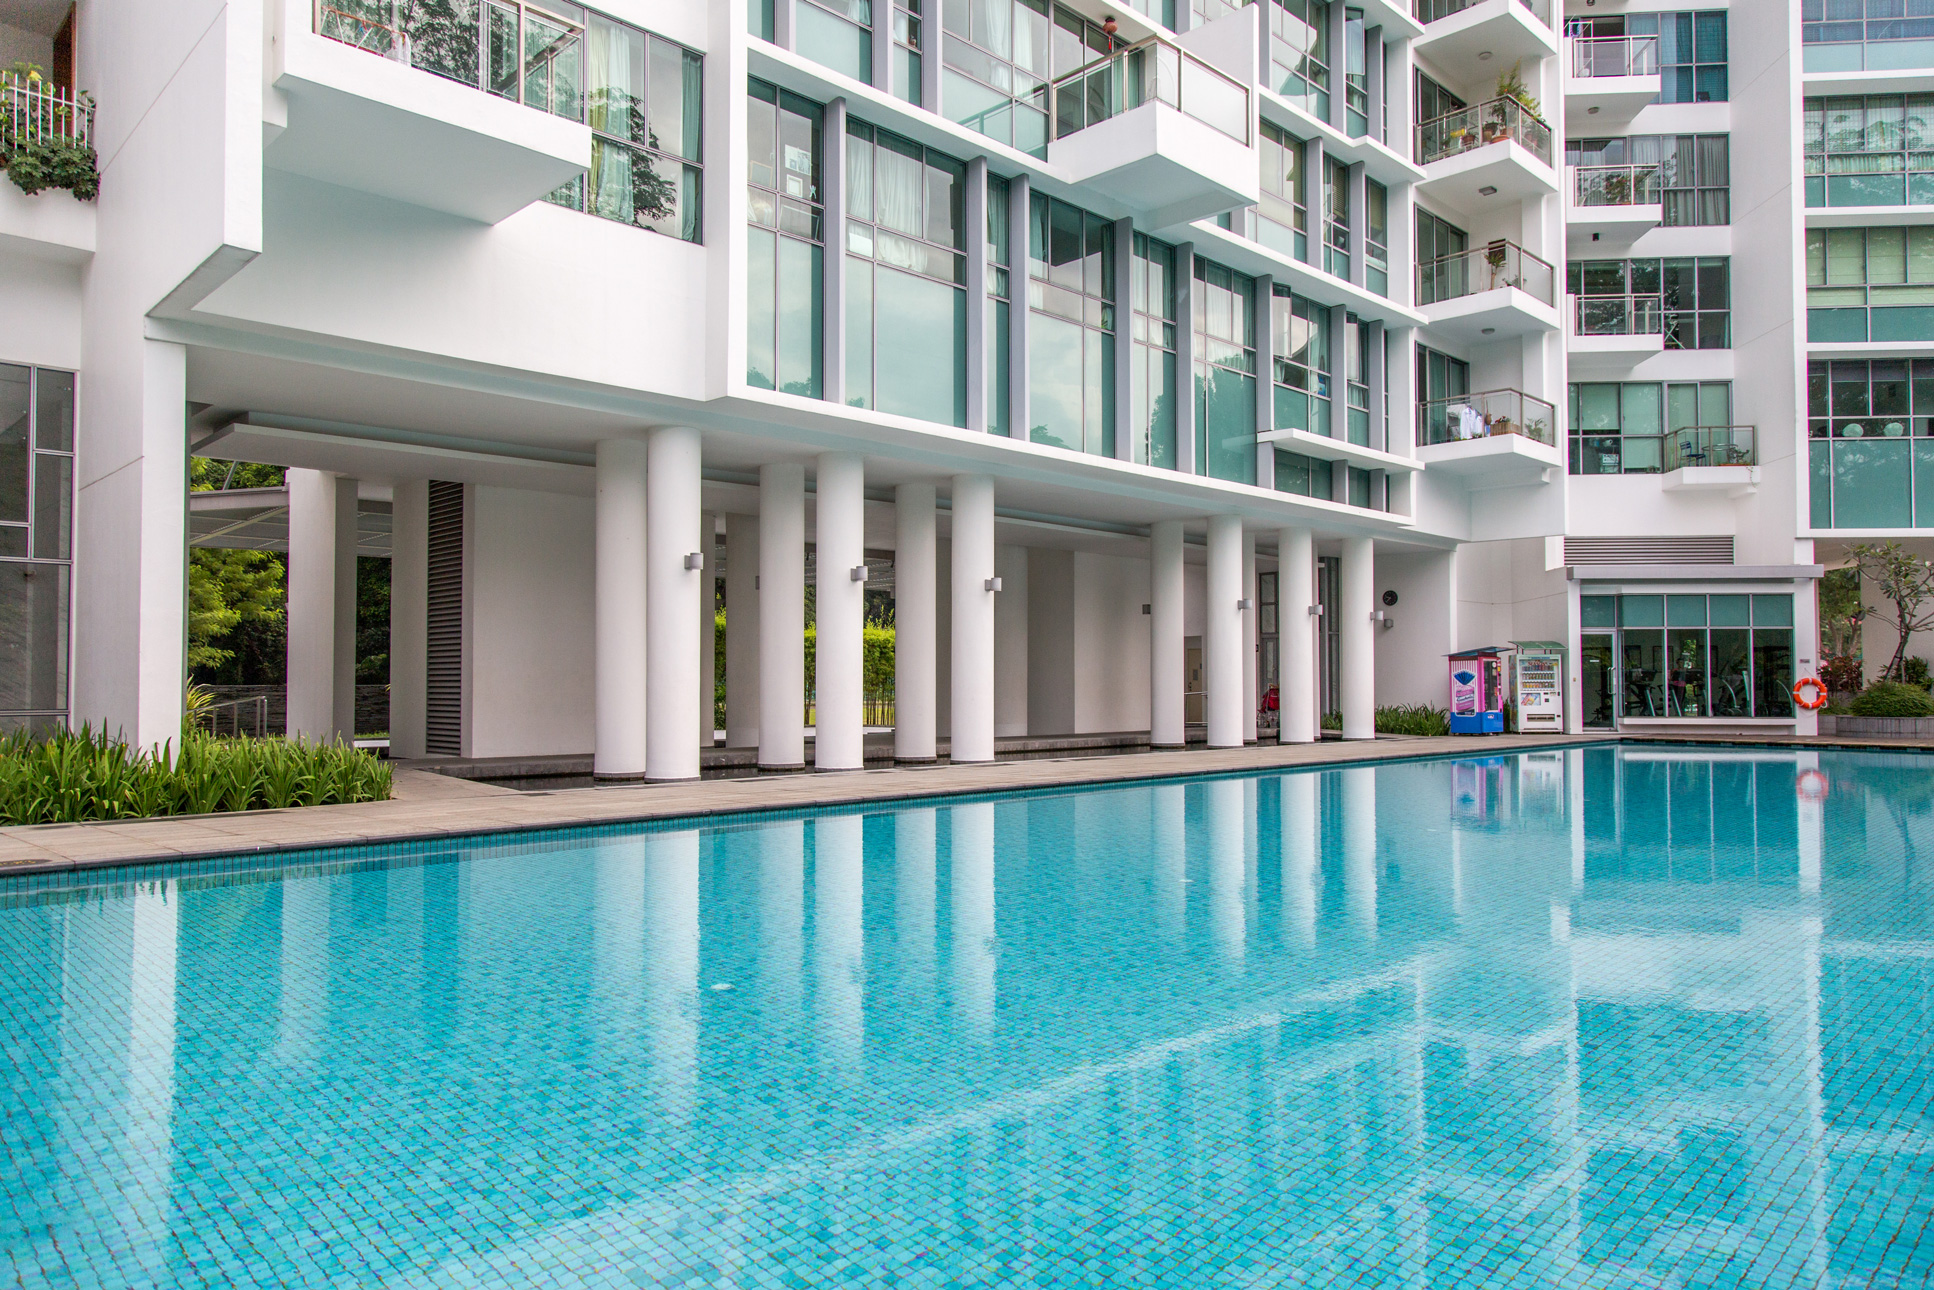 The Chuan Lorong Chuan Condominium Singapore